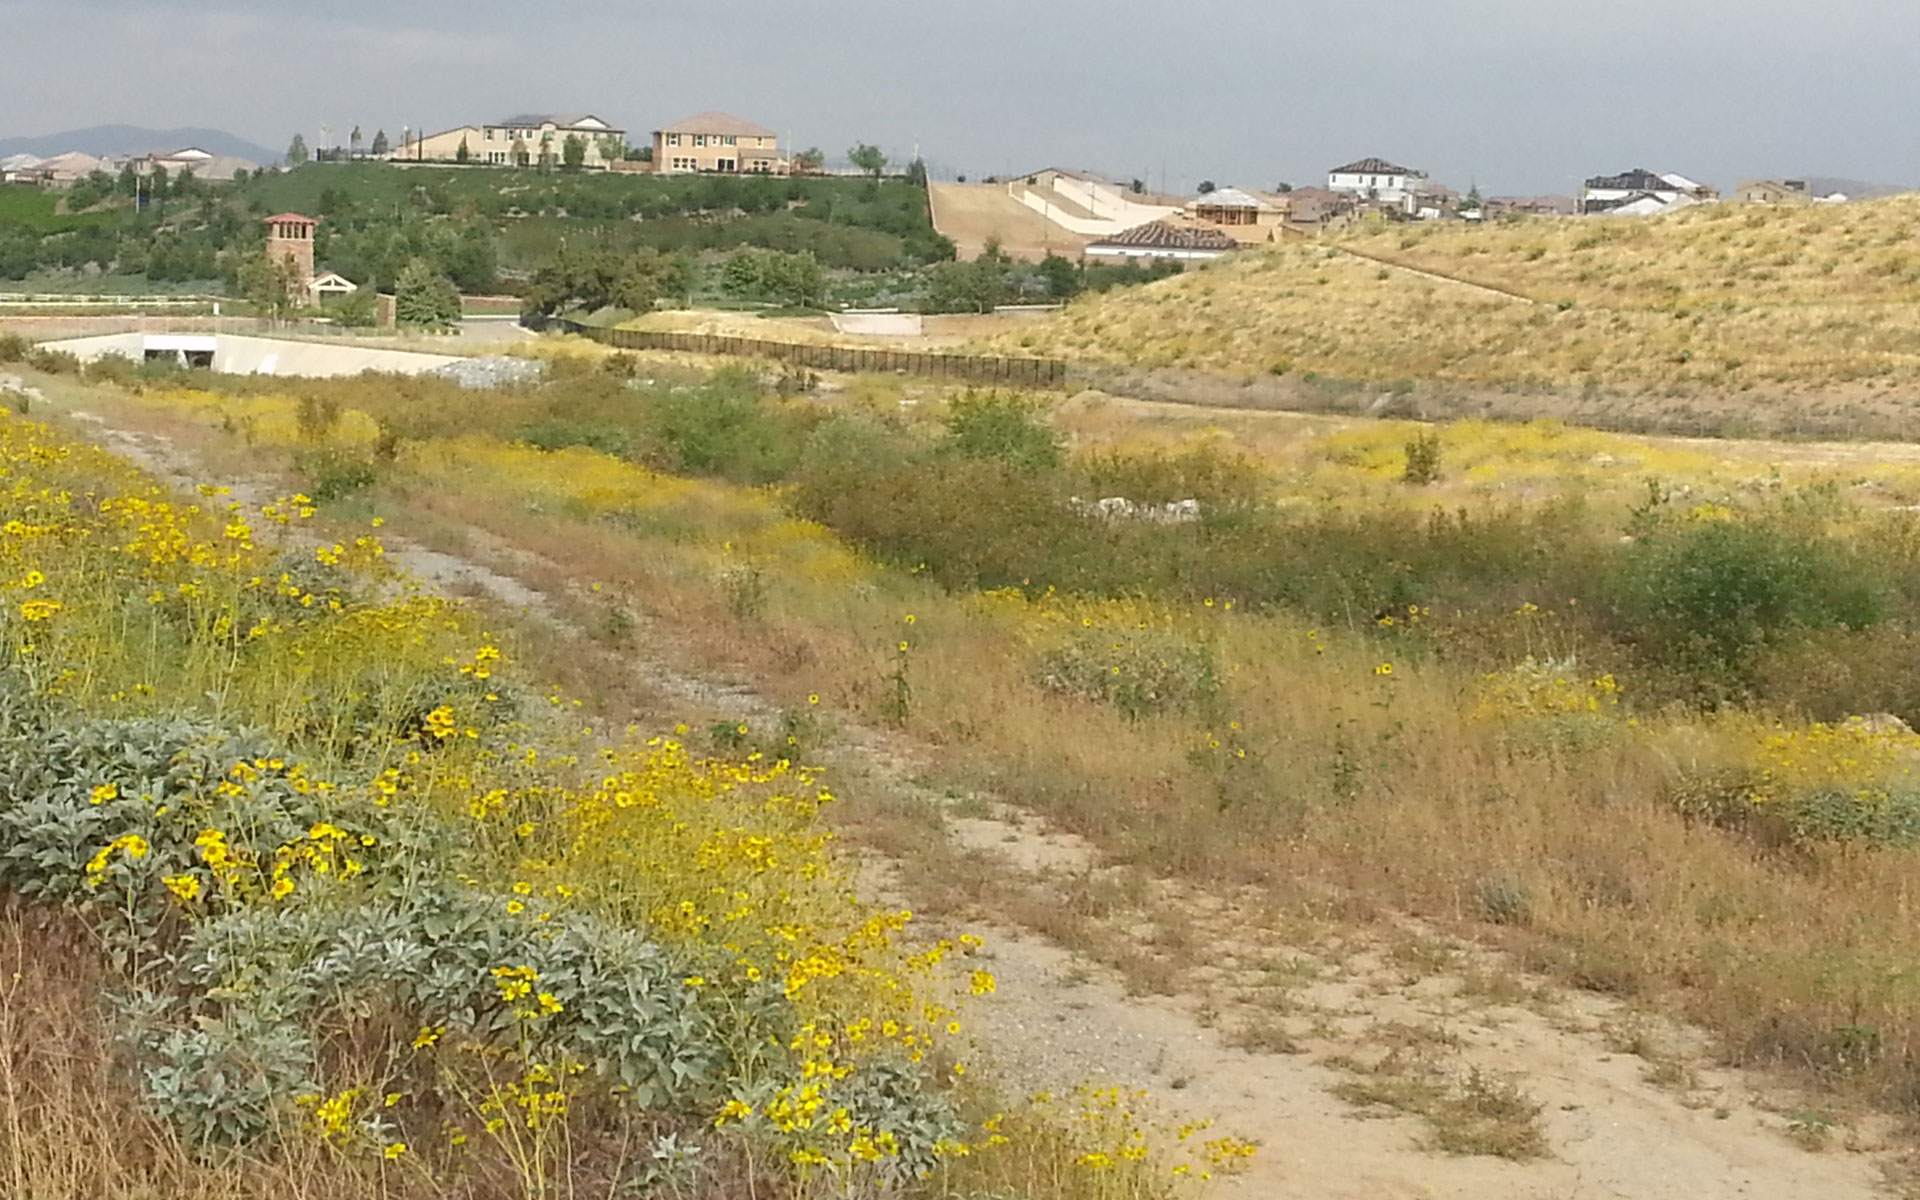 Sage managed design and construction of this large flood control channel, obtained regulatory permits, and enhanced vegetation